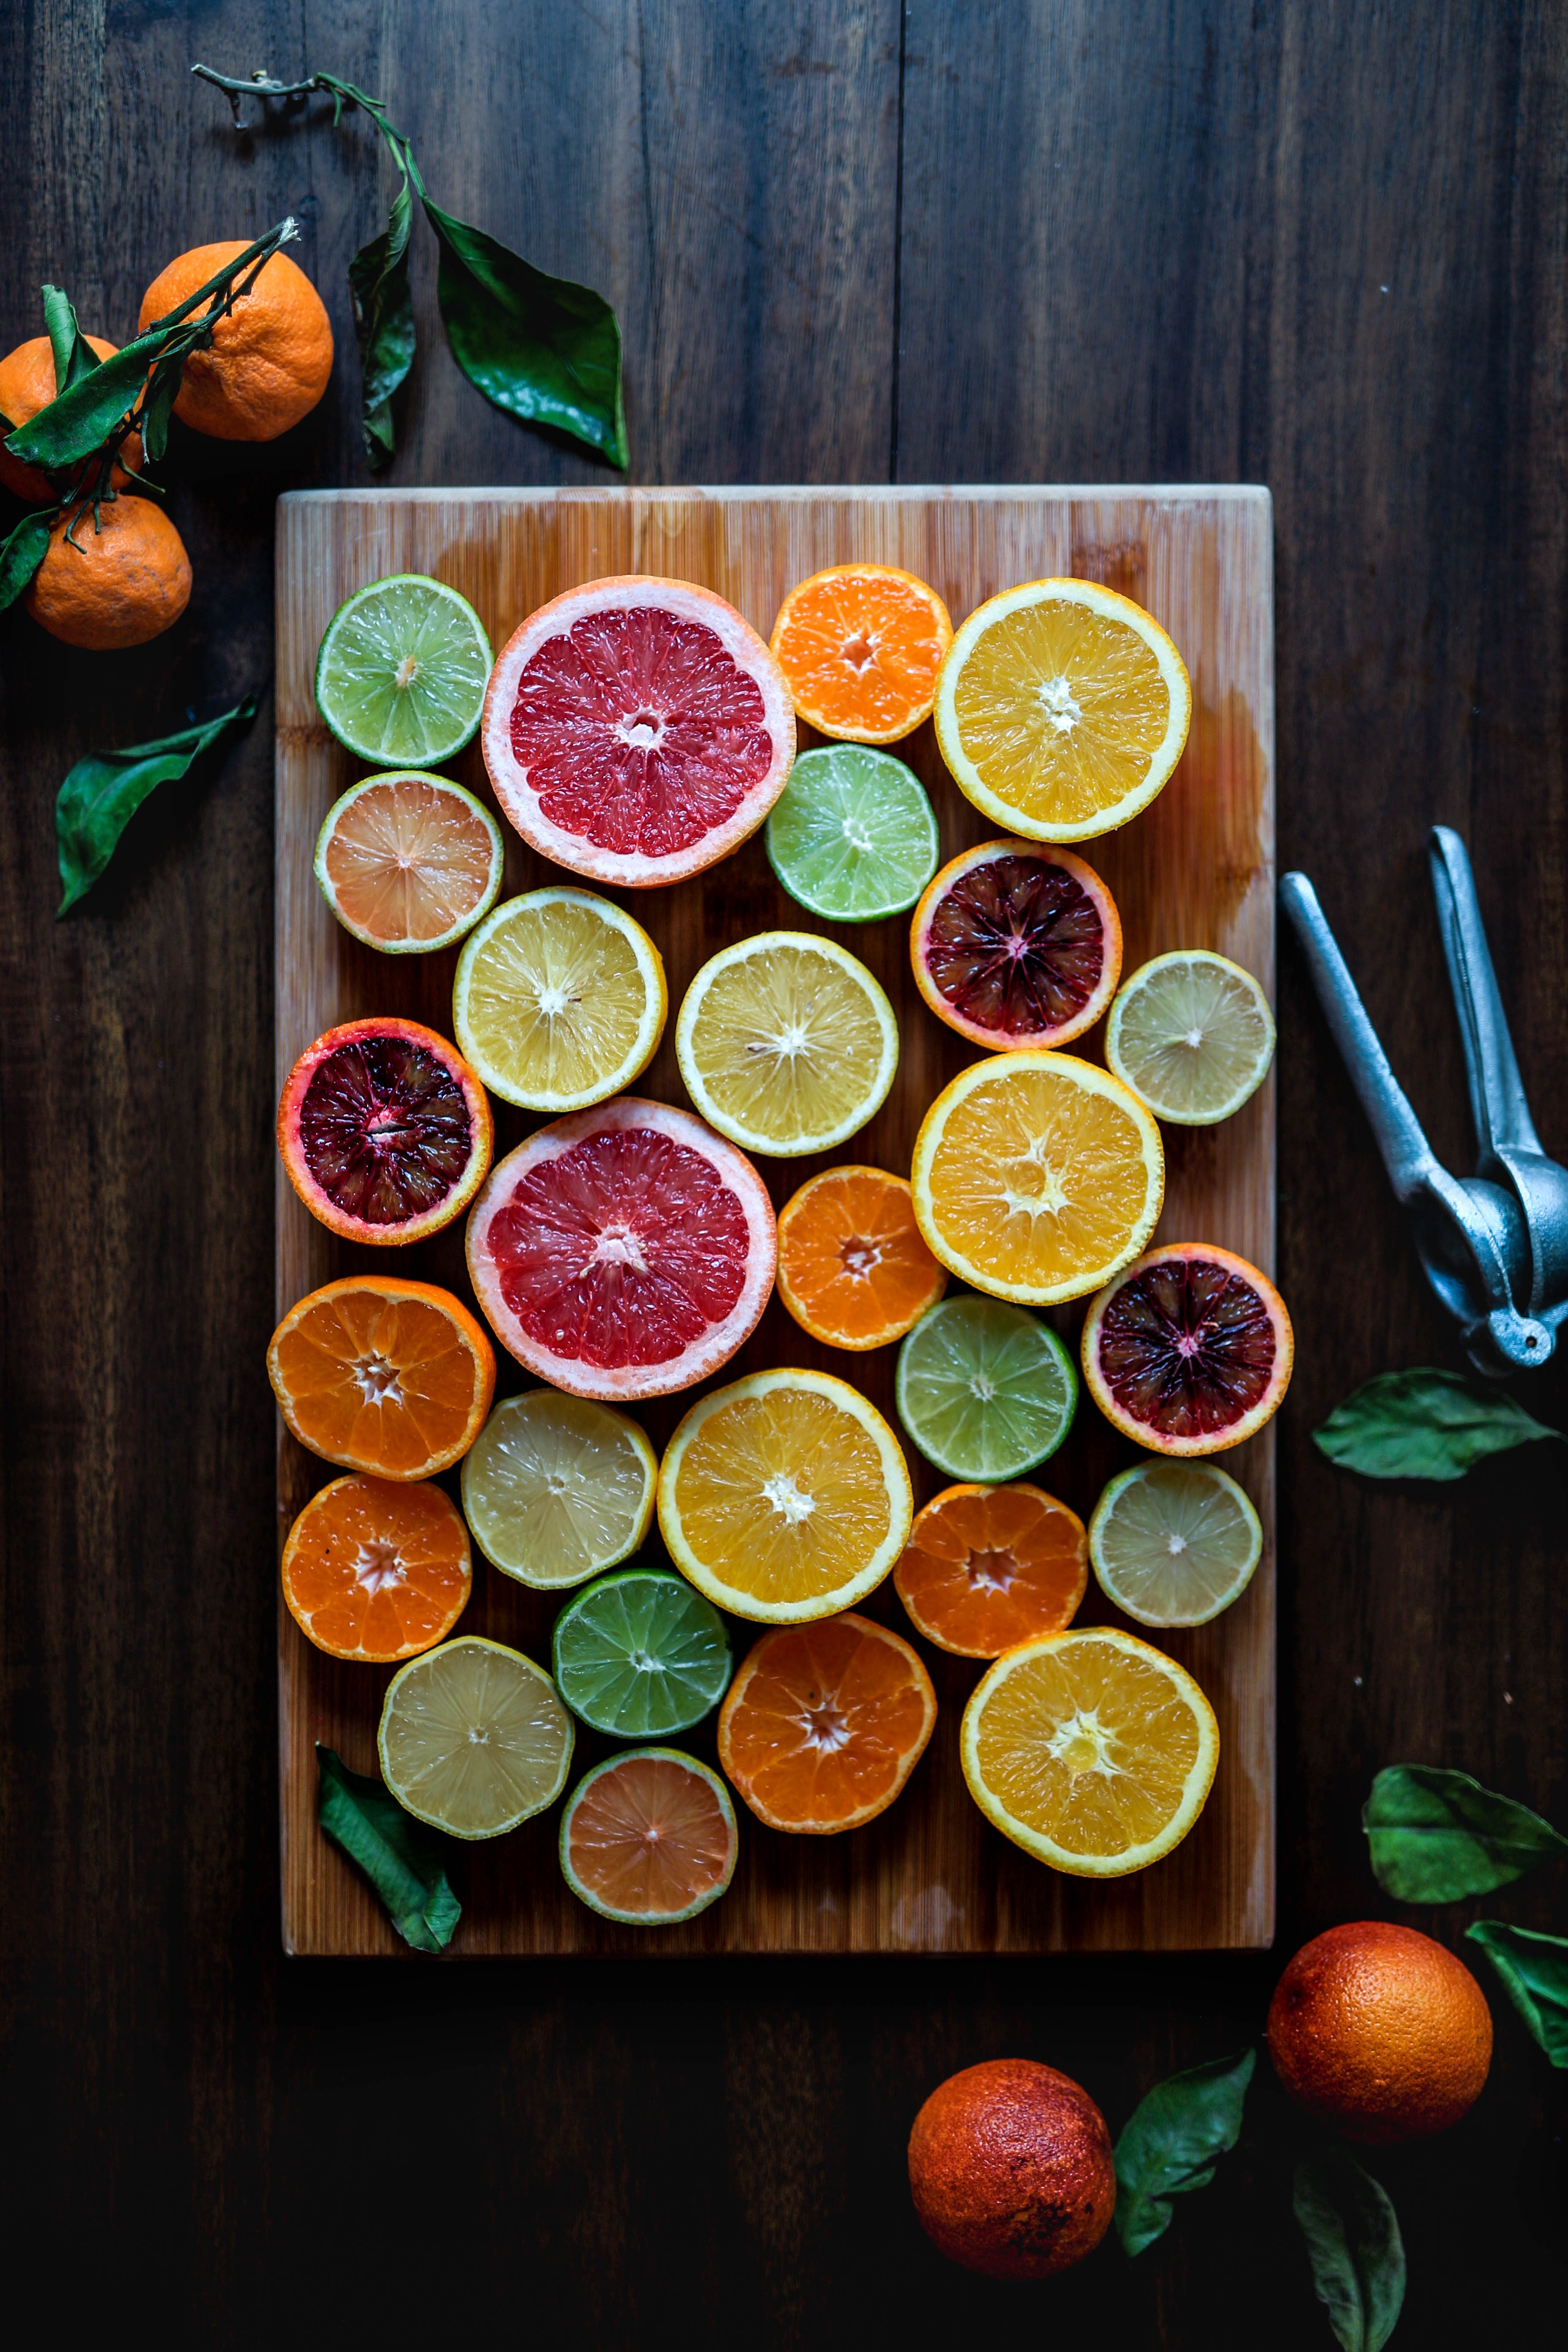 100  food pictures  hd